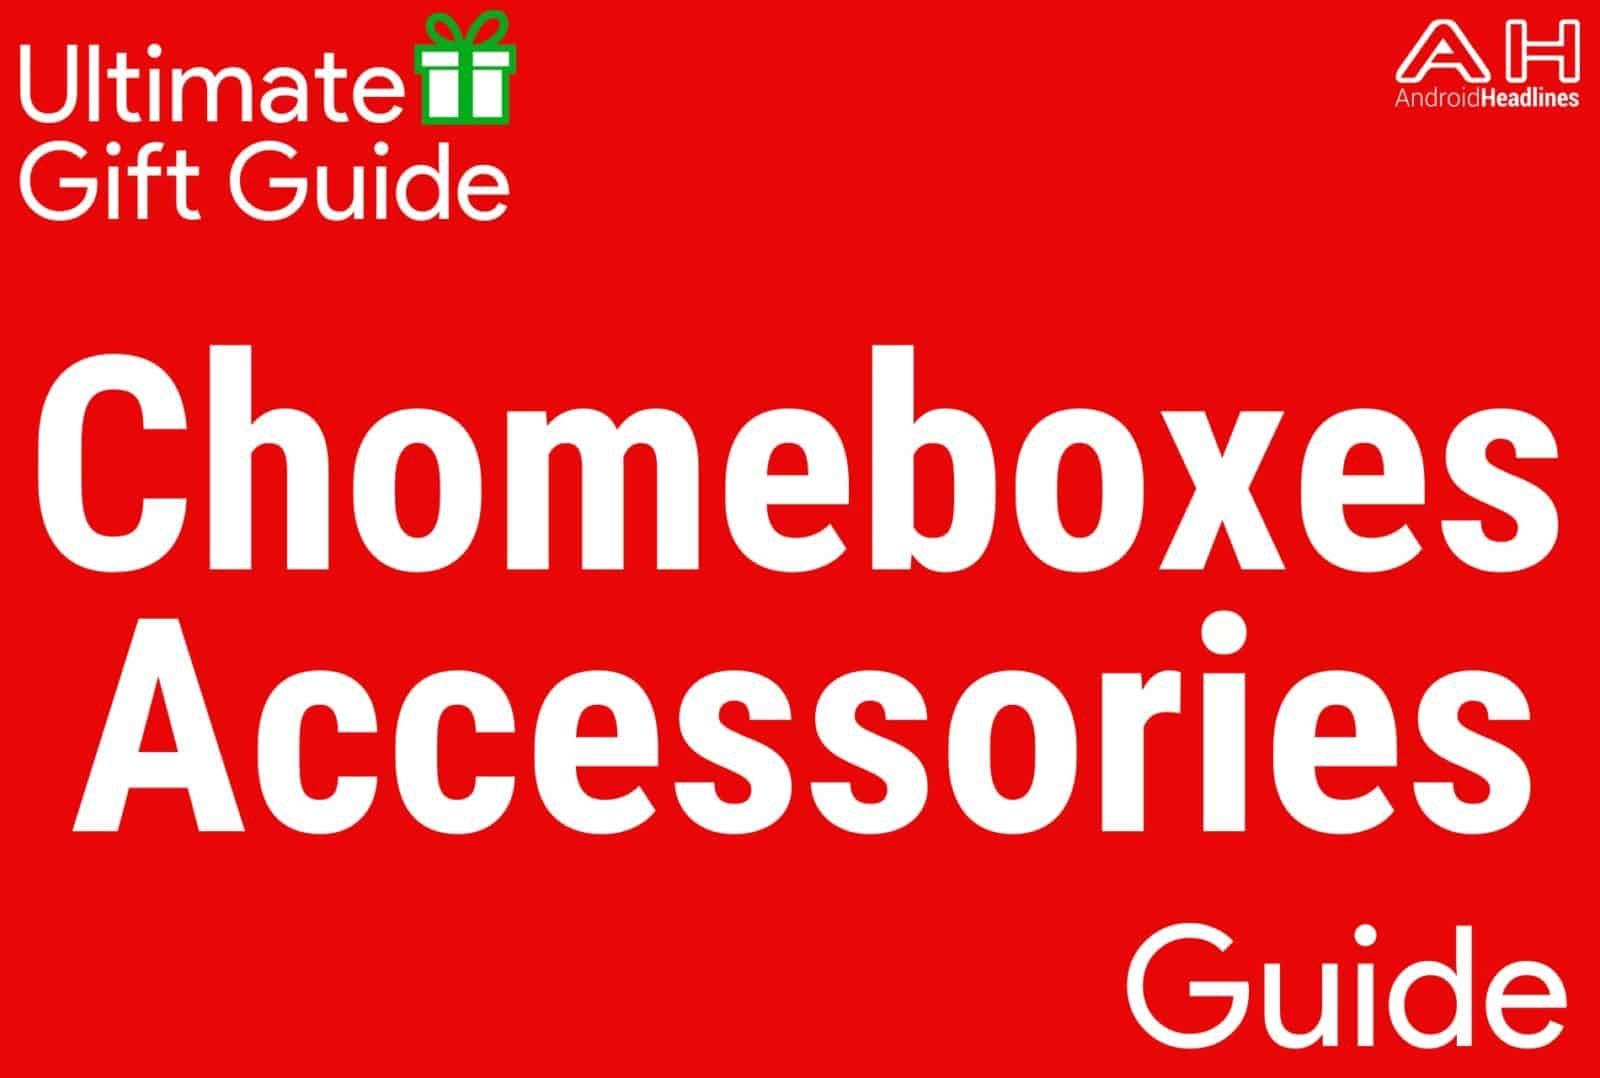 Chromebook Accessories - Gift Guide 2015